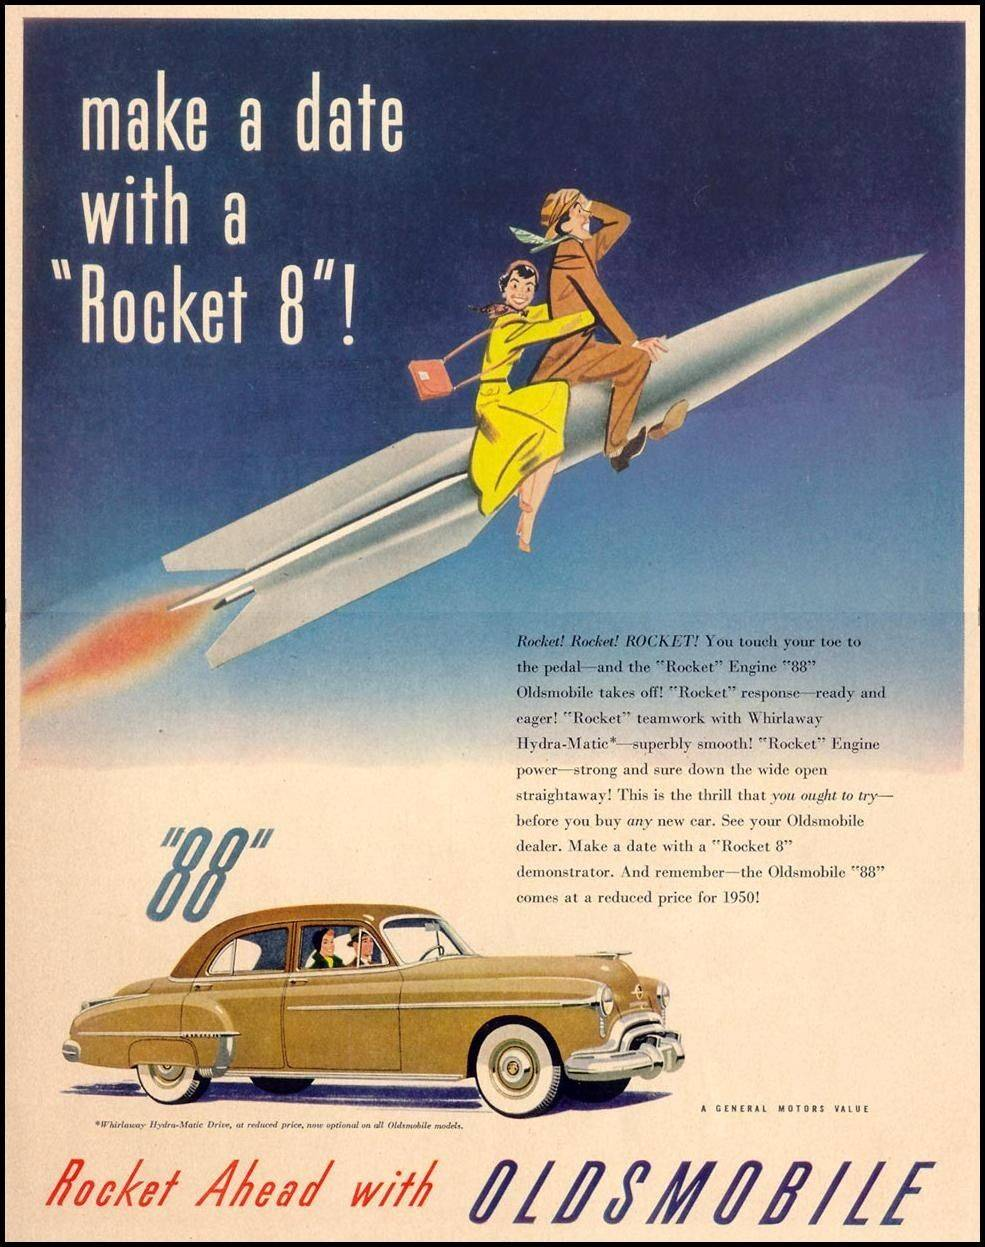 Oldsmobile Rocket 8 engine Olds 88 advertisement